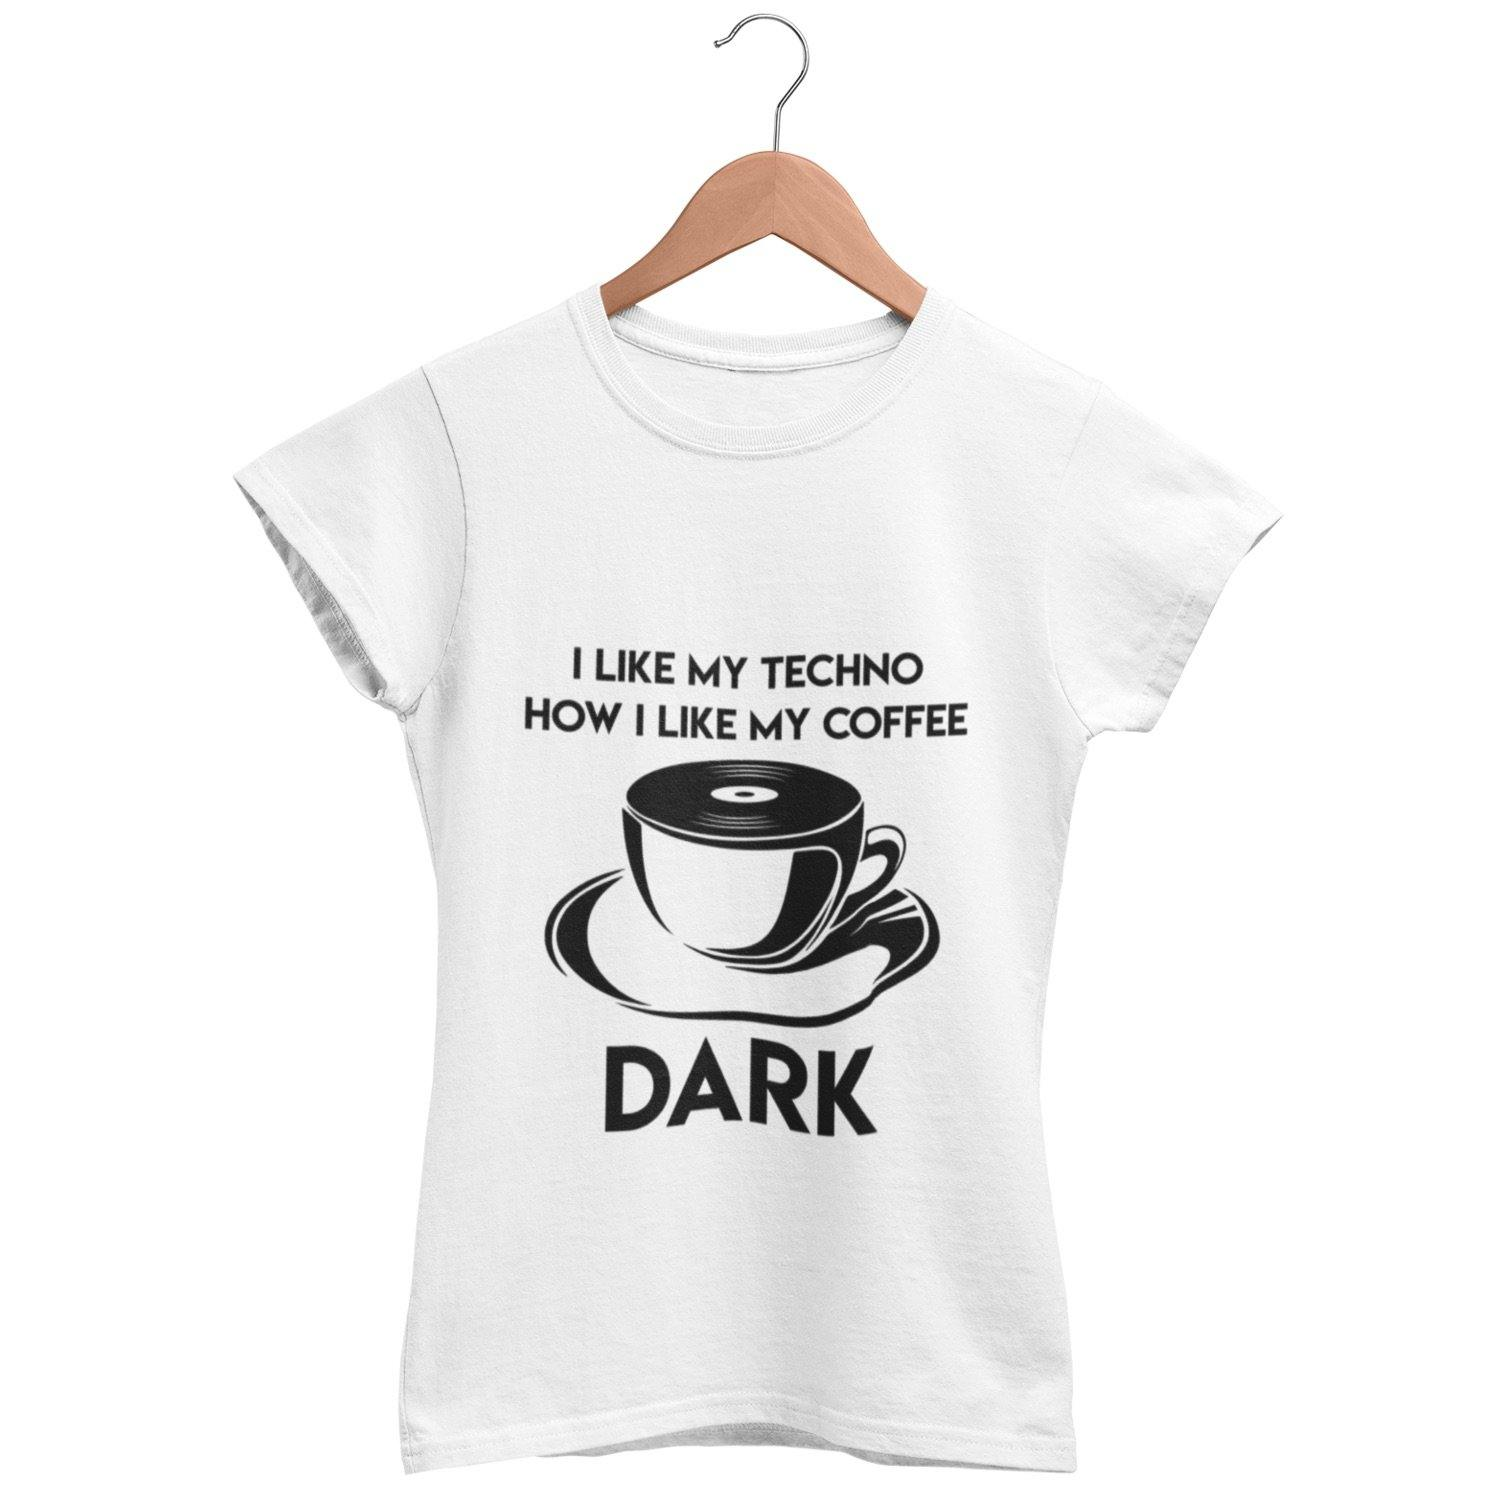 Camiseta de corte clásico Techno Coffee